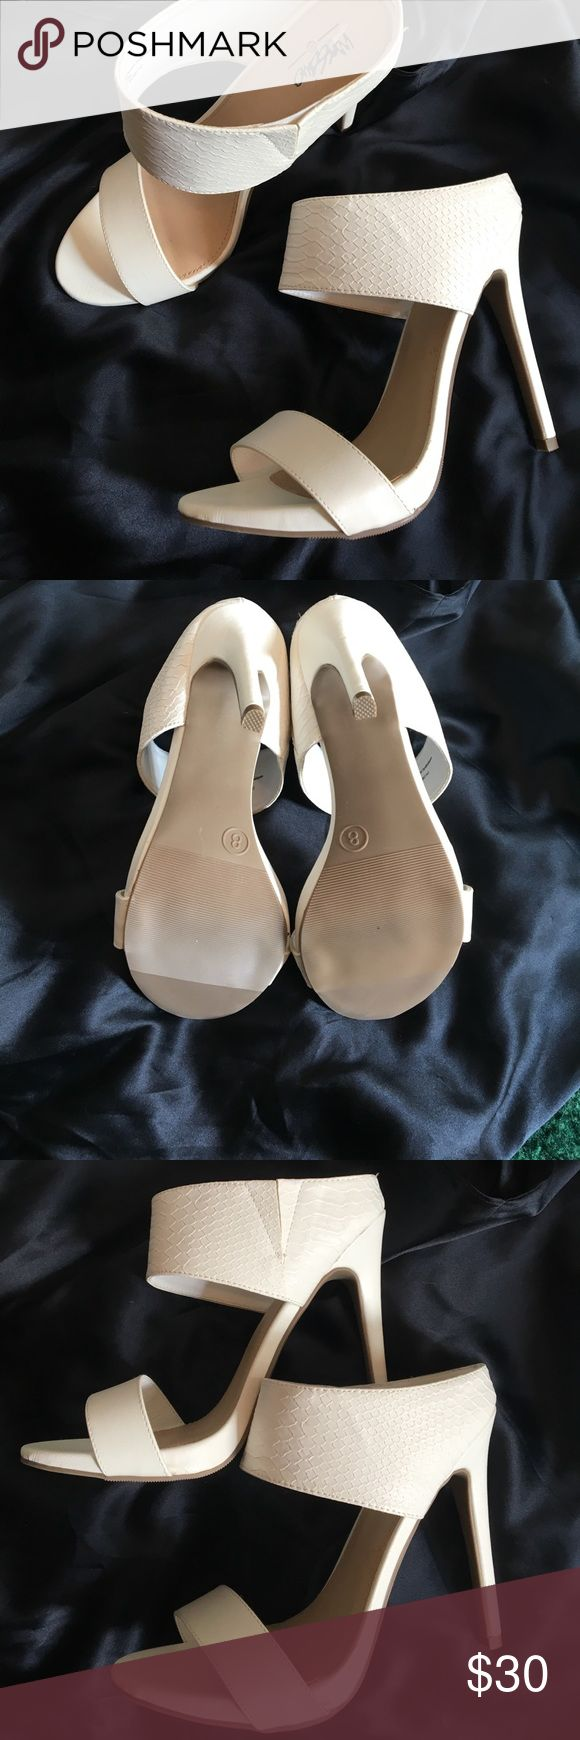 """Sexy white strappy heels Sexy, white, faux snake print heels. Heel is 5"""", with 1"""" platform. Never worn. Look great with jeans, or dressed up!!! Shoes Heels"""